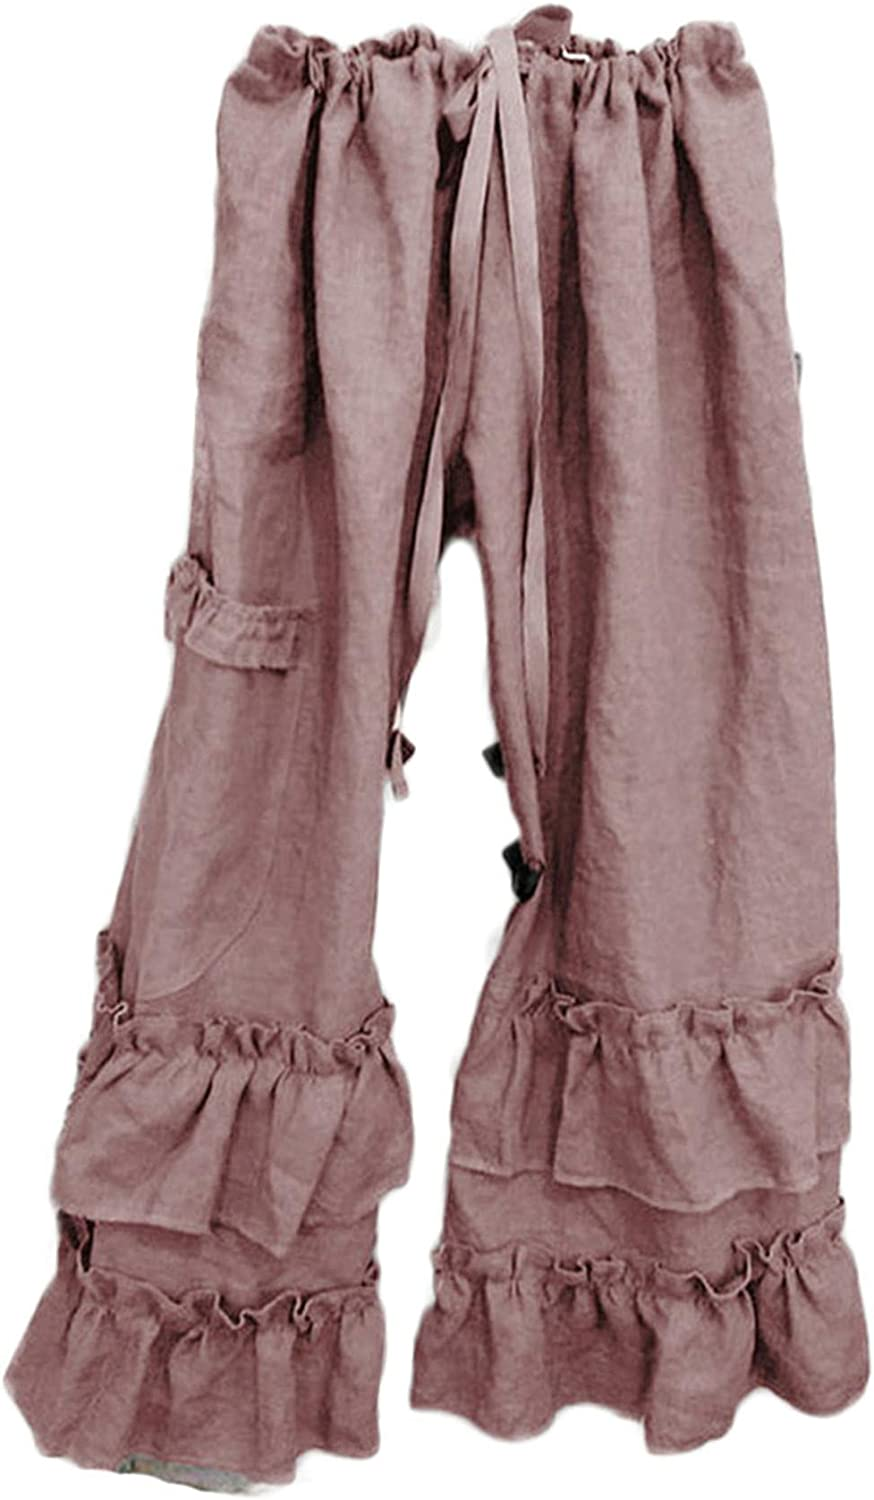 Andongnywell Women's Casual Pajamas Pants Drawstring Stretchy Loose Baggy Long Lounge Pants with Pockets Trousers (Pink,Small)